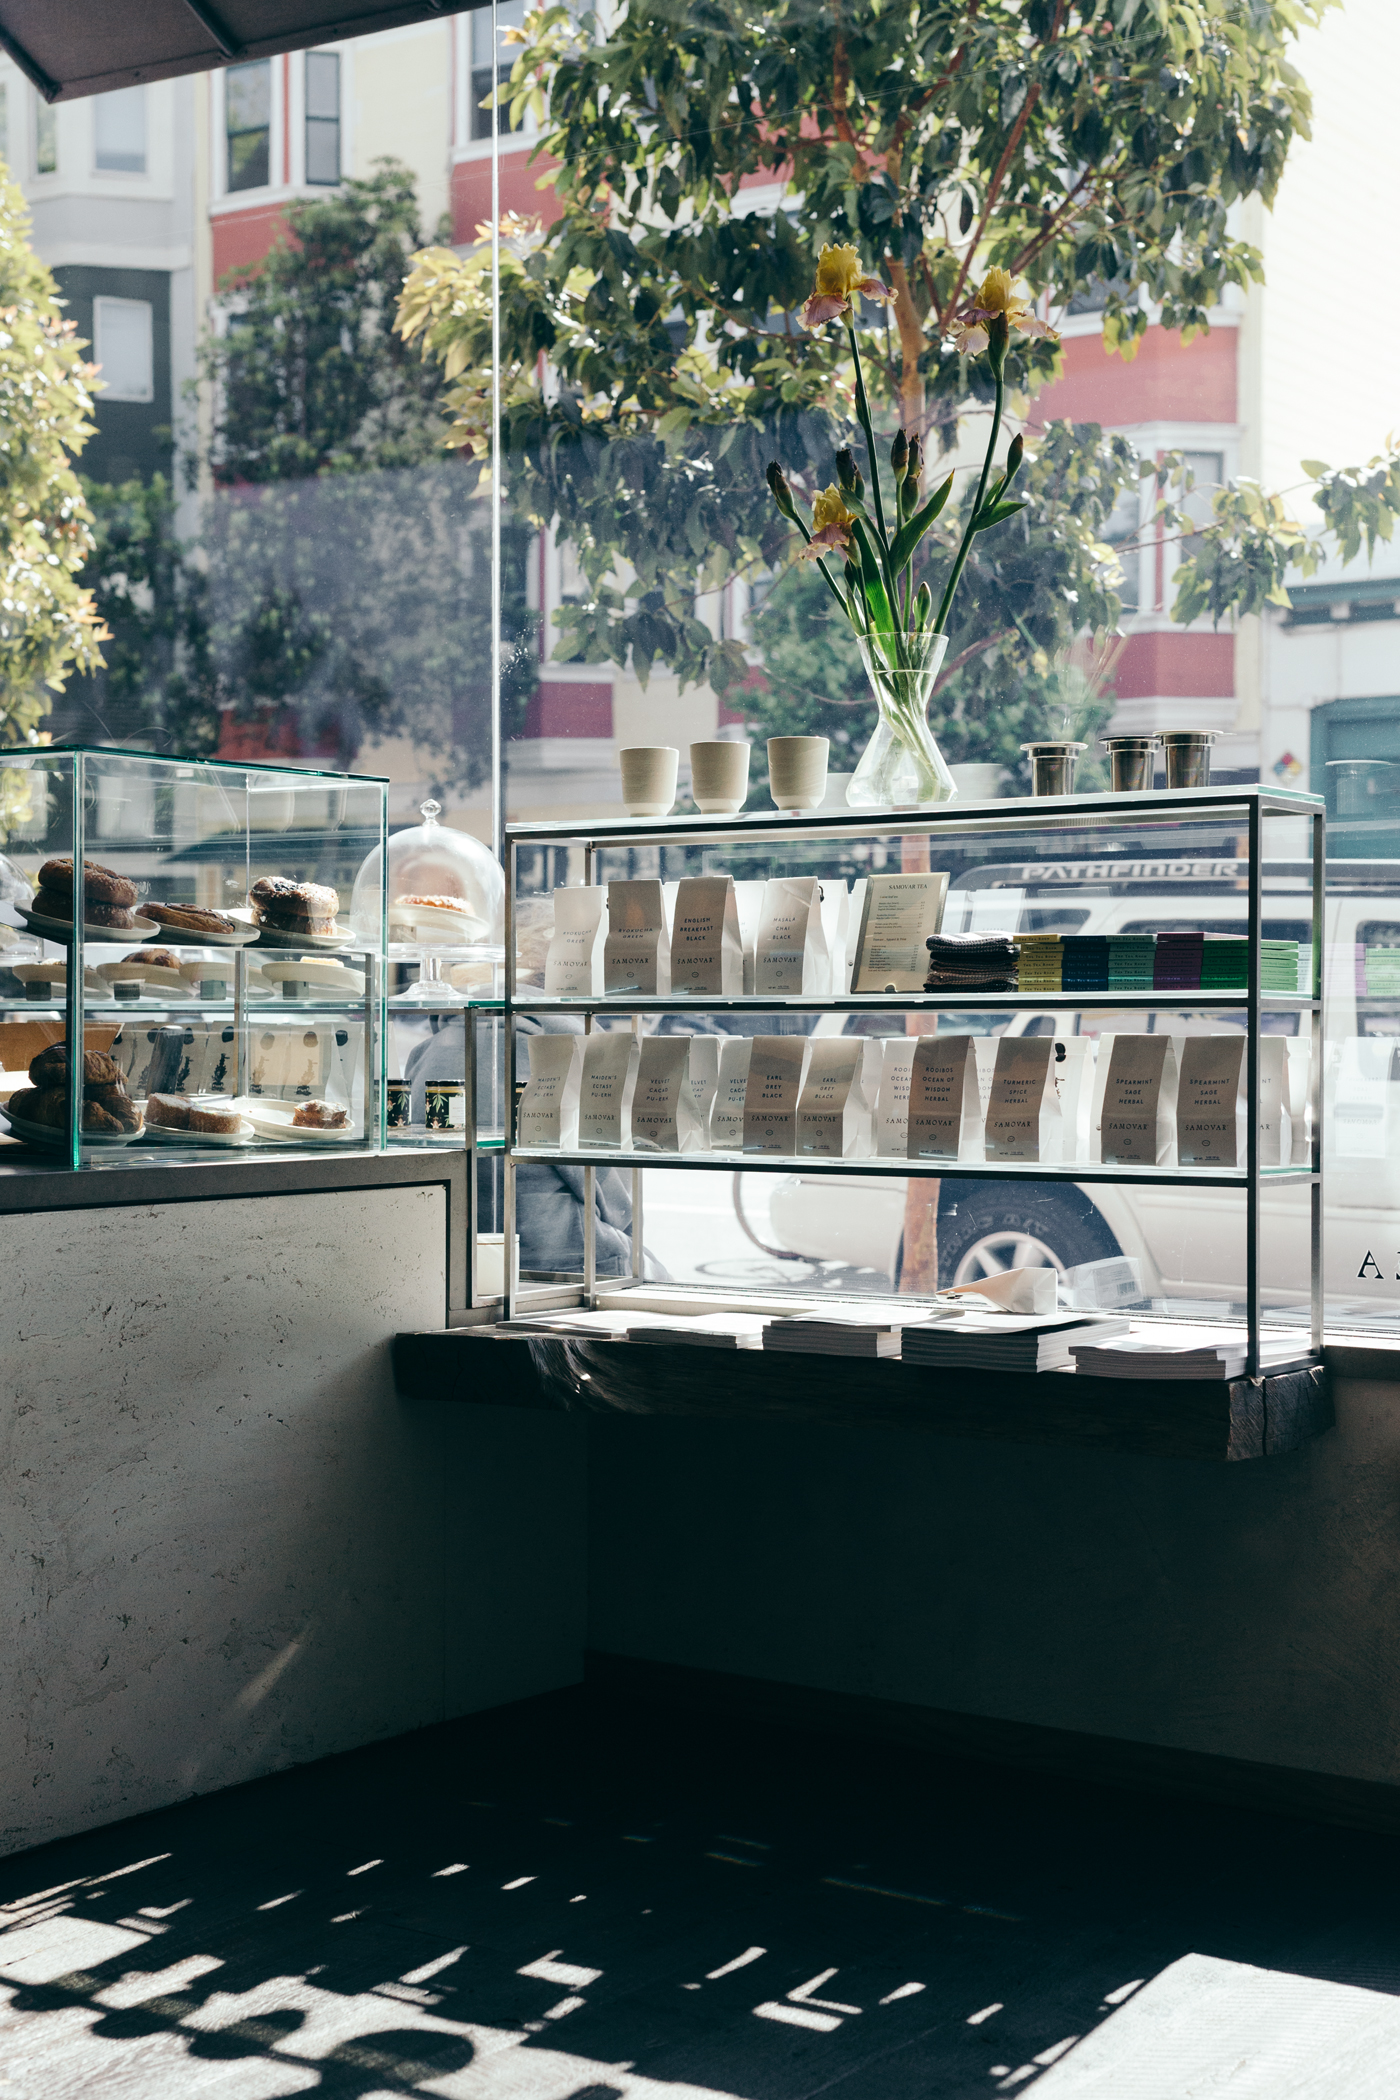 Greysuitcase Cafe Series: Samovar Tea Bar, San Francisco, California.